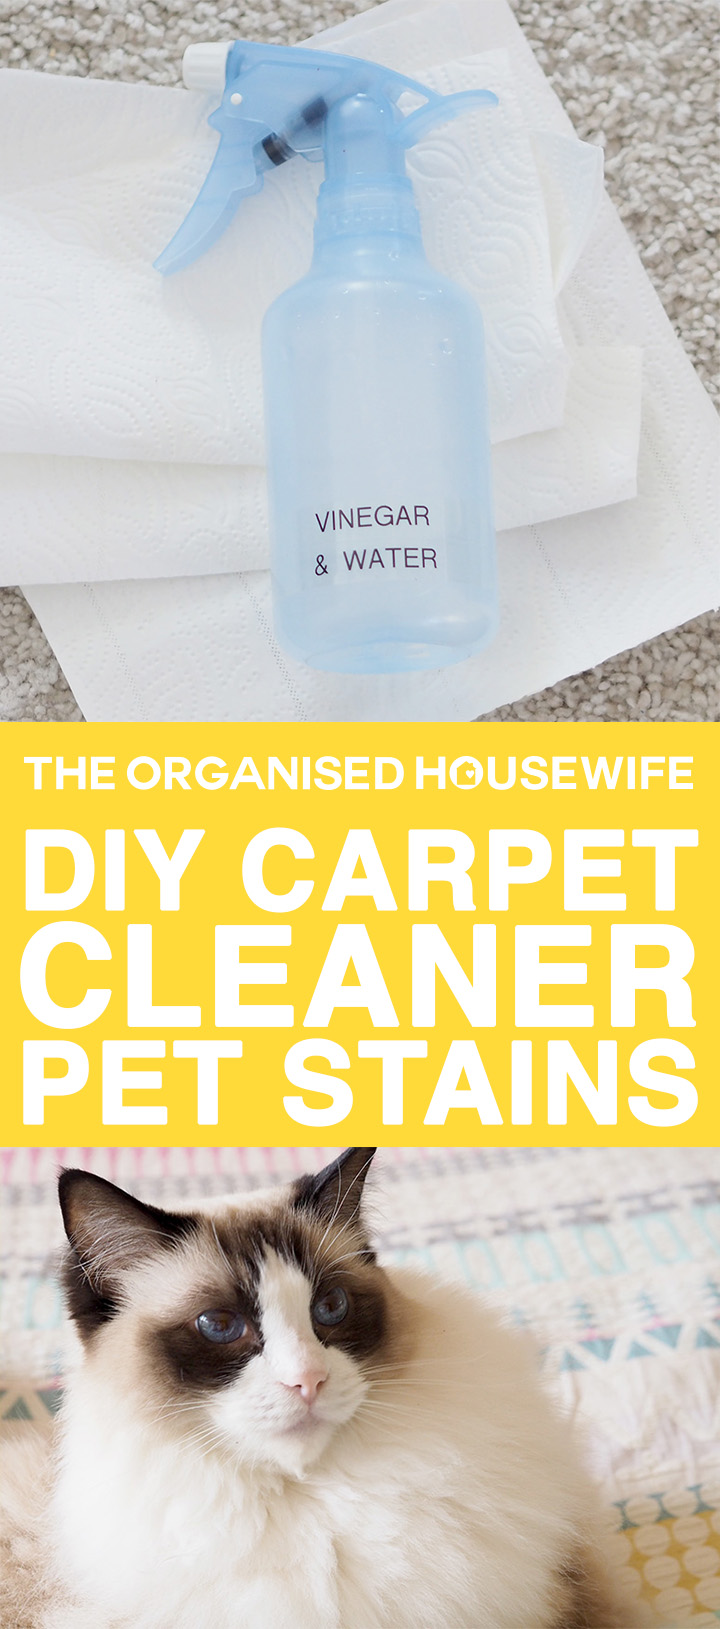 diy carpet cleaner. Easy And Effective DIY Carpet Cleaner For Pet Stains, To Remove Any Messes Odours Diy Y